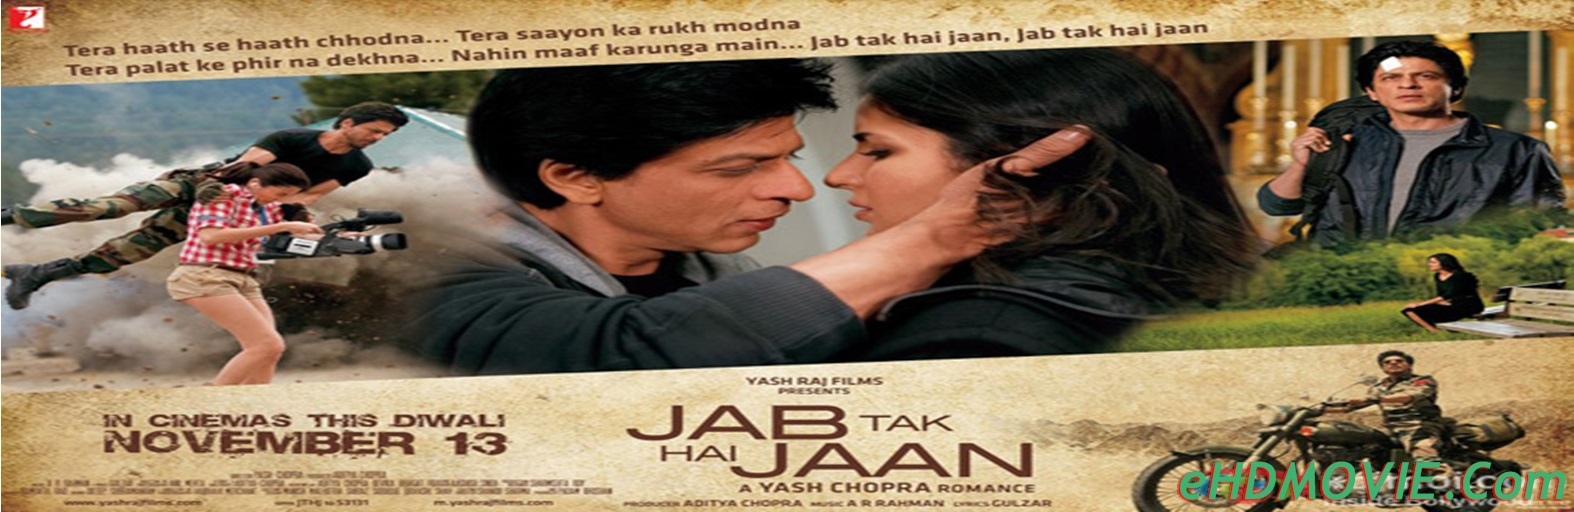 Jab Tak Hai Jaan 2012 Full Movie Hindi 720p - 480p ORG BRRip 700MB - 1.5GB ESubs Free Download